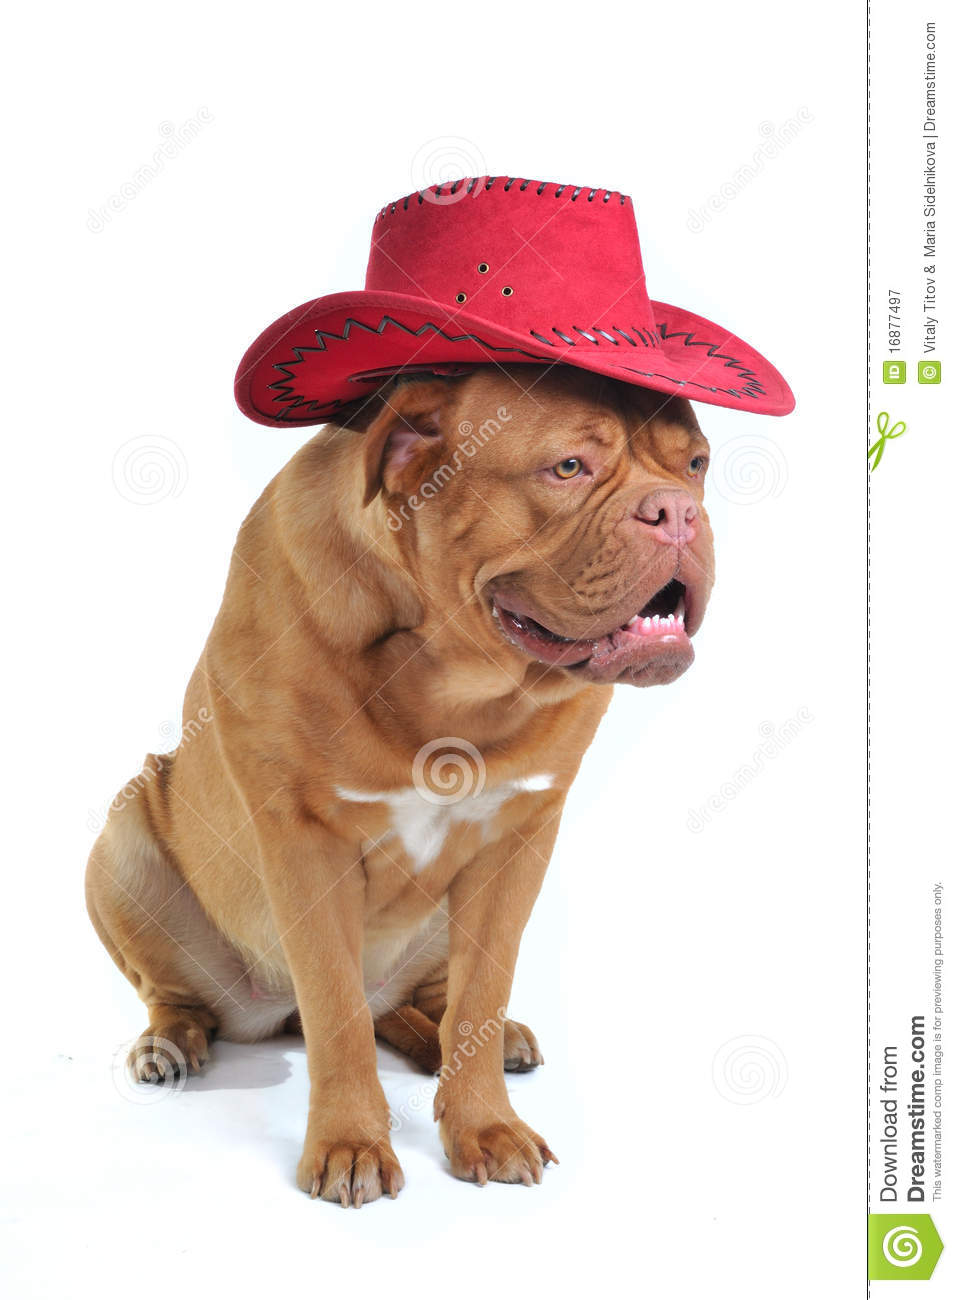 Big Dog In Cowboy Hat Stock Image Image Of Close Culture